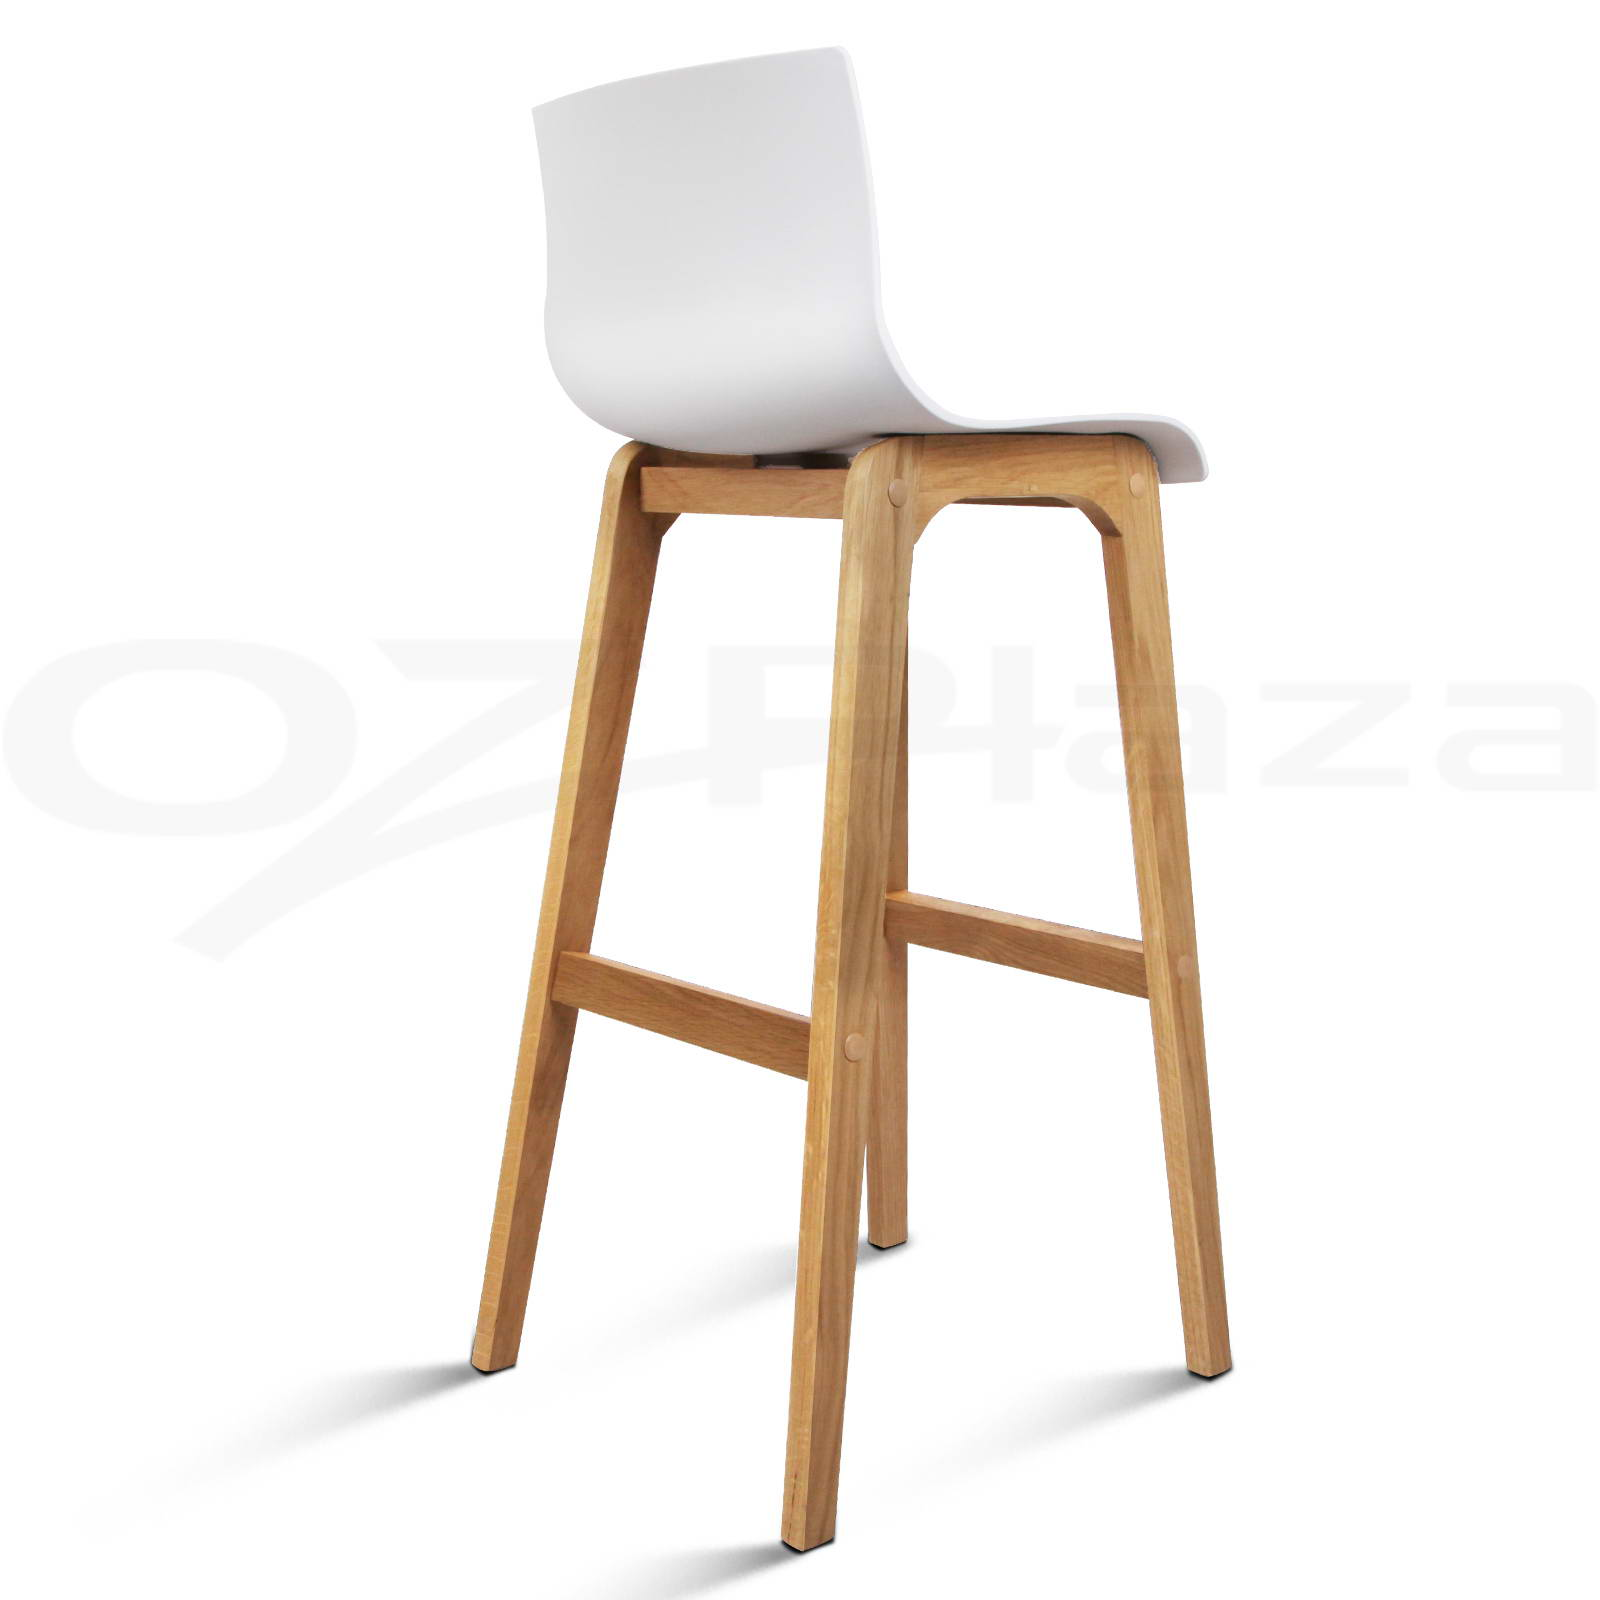 wooden bar stool chairs chair covers rental dublin 2x oak wood stools dining kitchen side